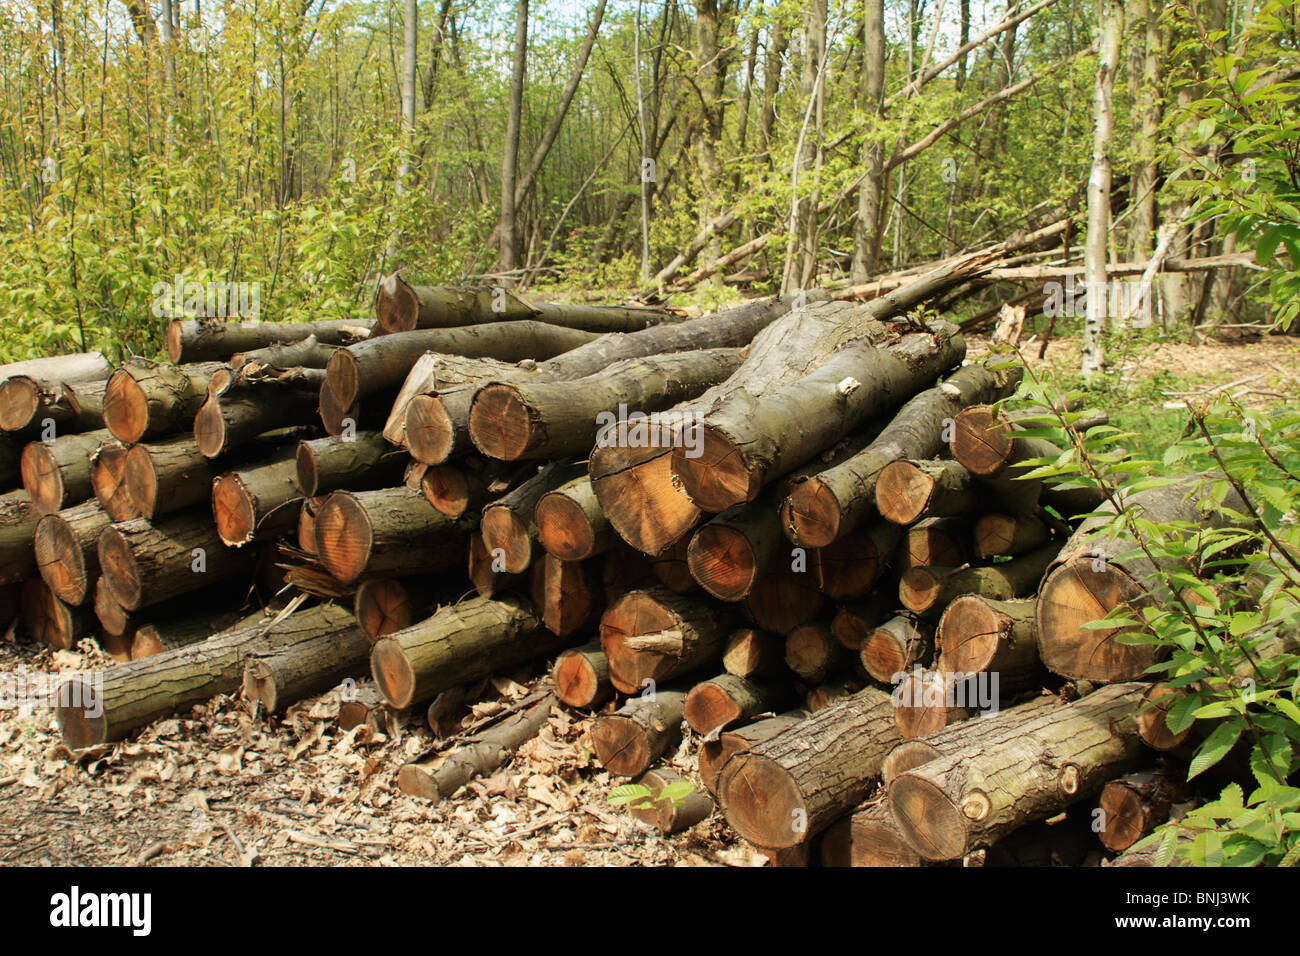 Timber pile, Norsey Wood, Essex UK - Stock Image